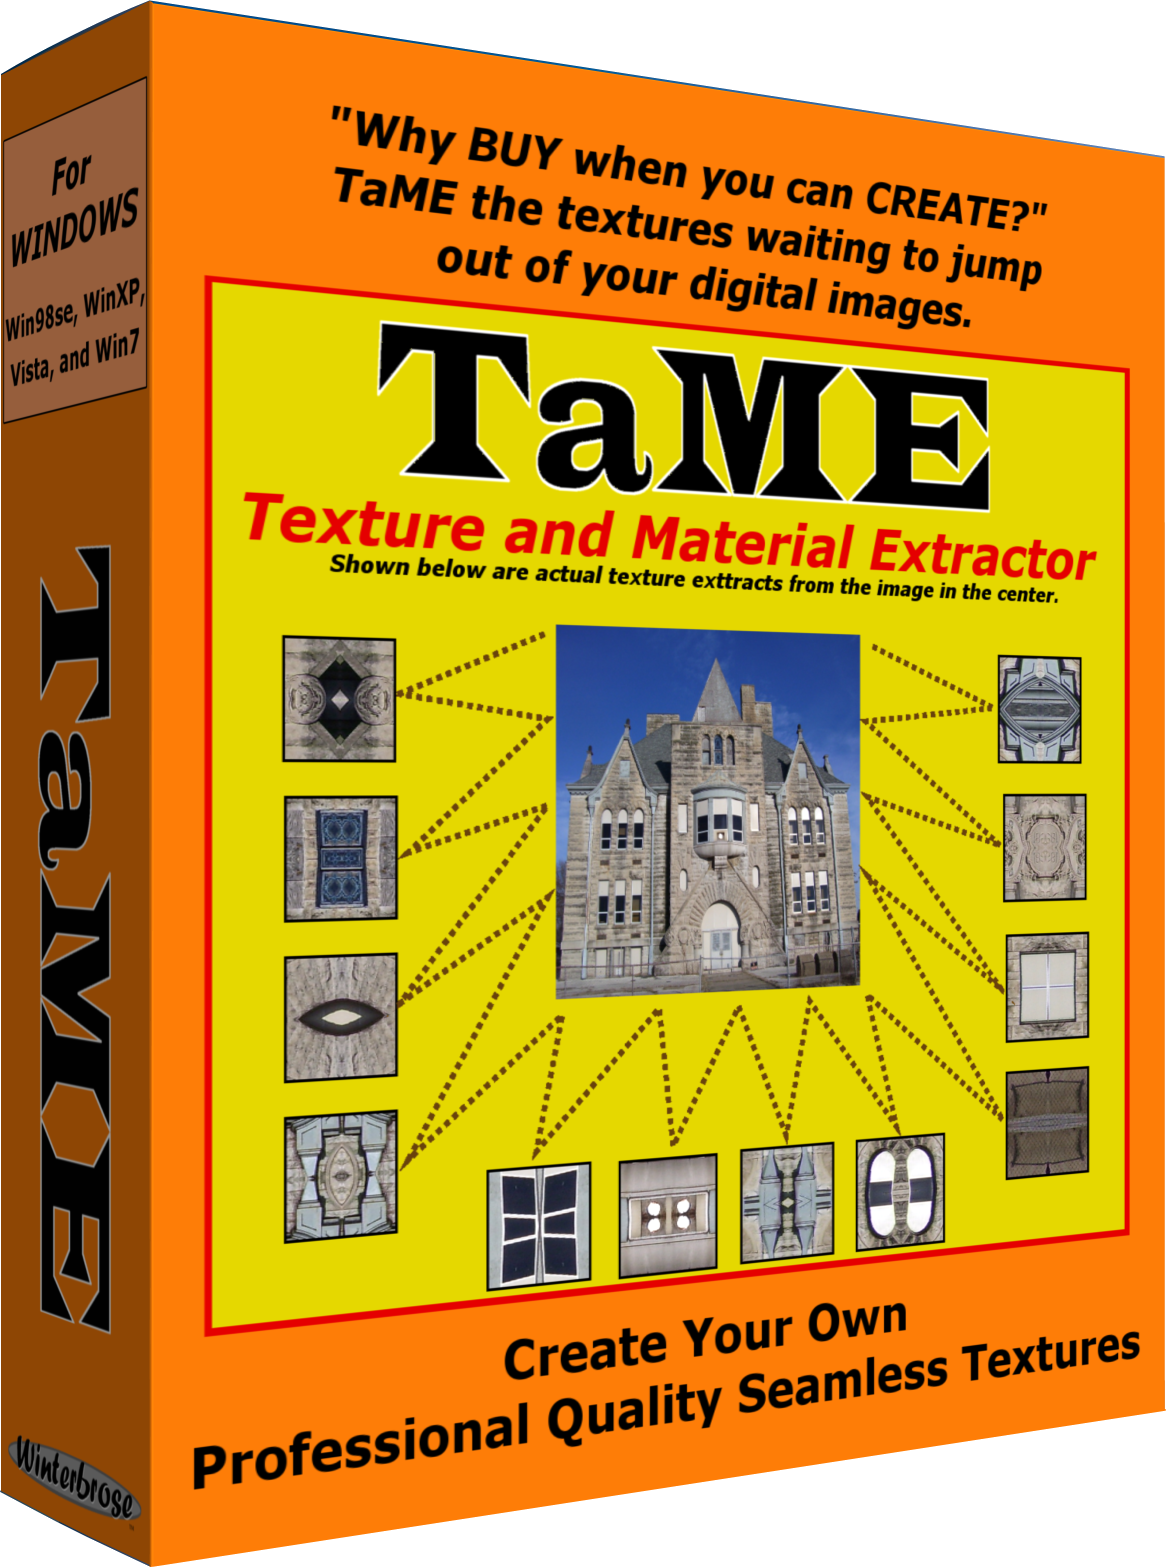 TaME for Windows; The Texture and Material Extractor by Winterbrose